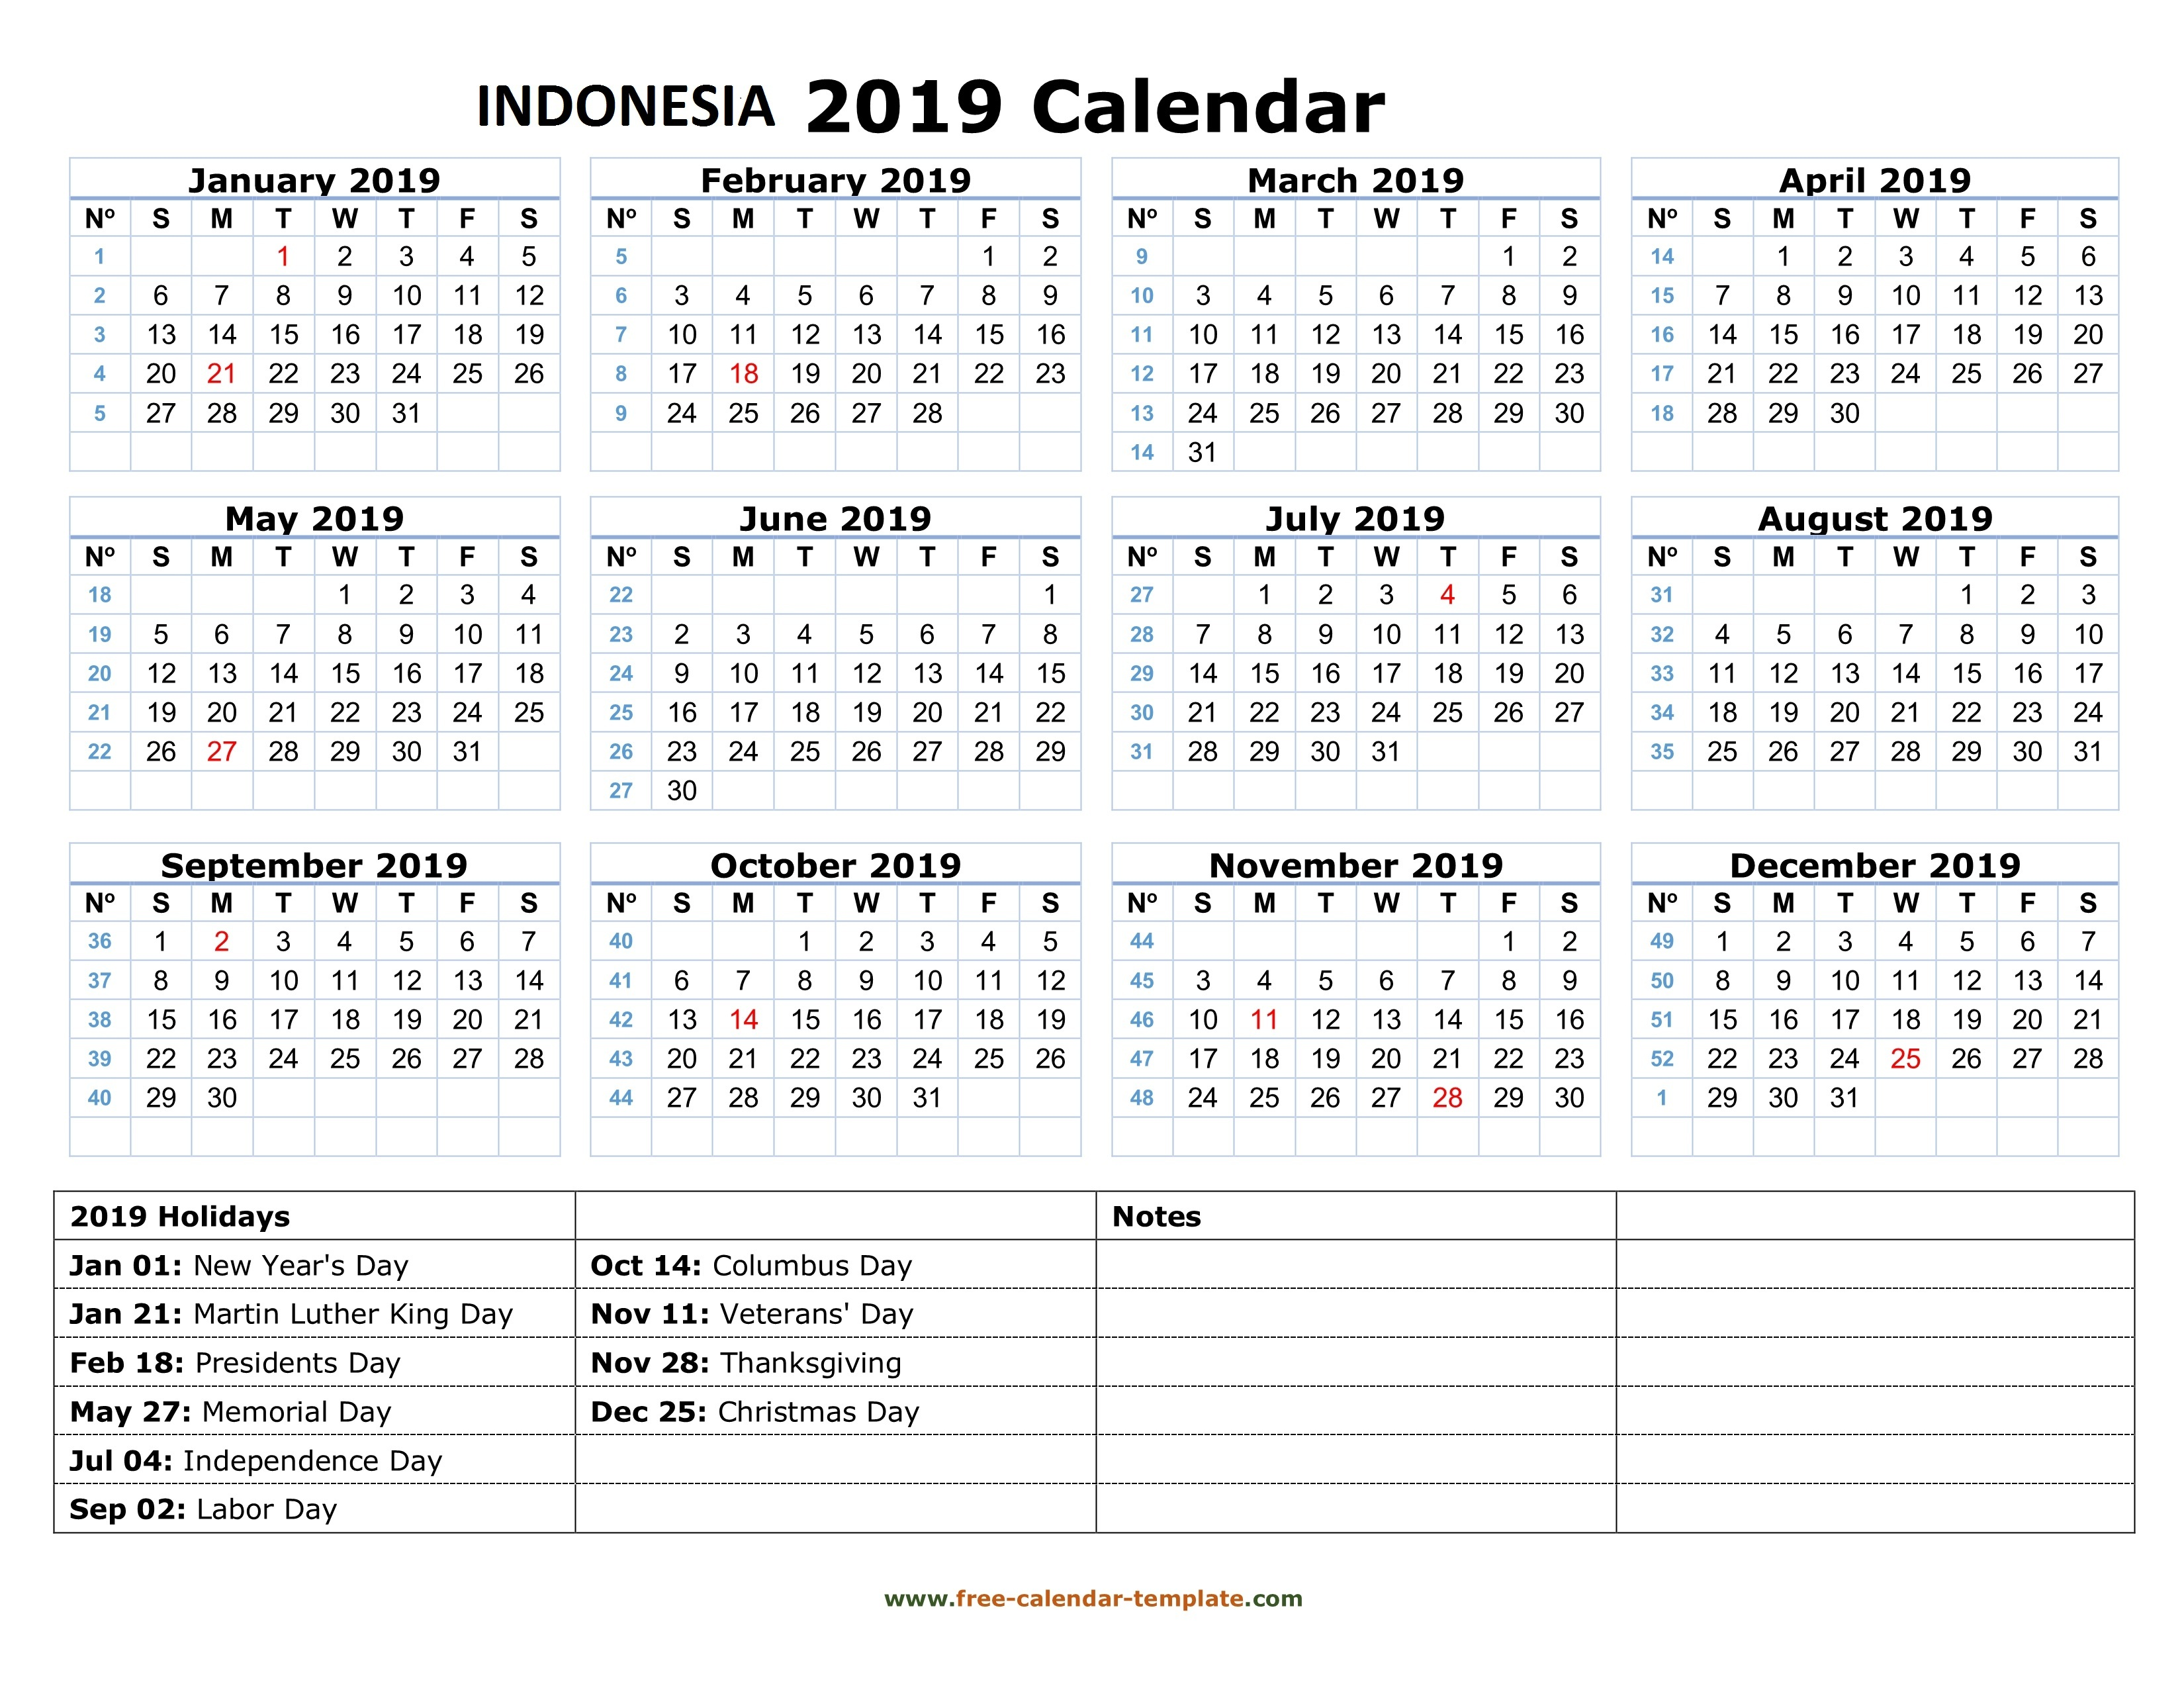 Next Year Calendar 2019 With Holidays Get Yearly Indonesia Free December